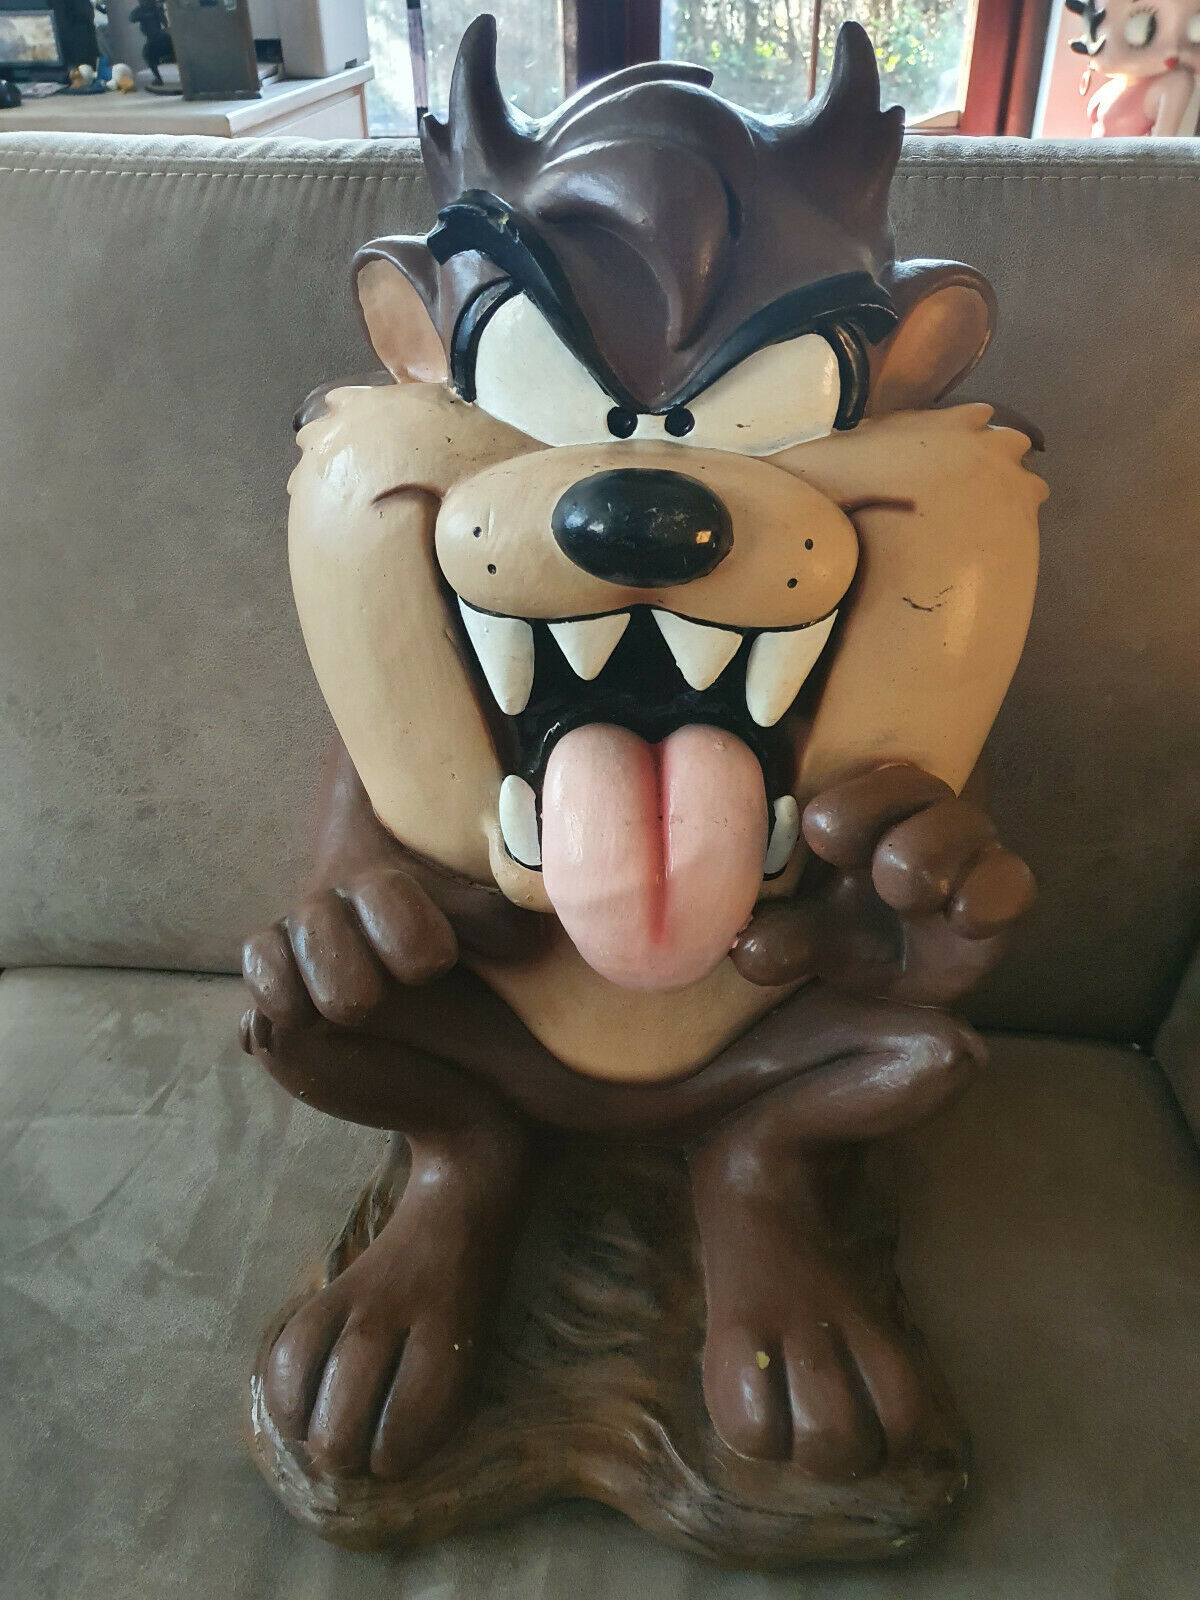 Primary image for Extremely Rare! WB Looney Tunes Taz Tasmanian Devil Sitting Big Figurine Statue